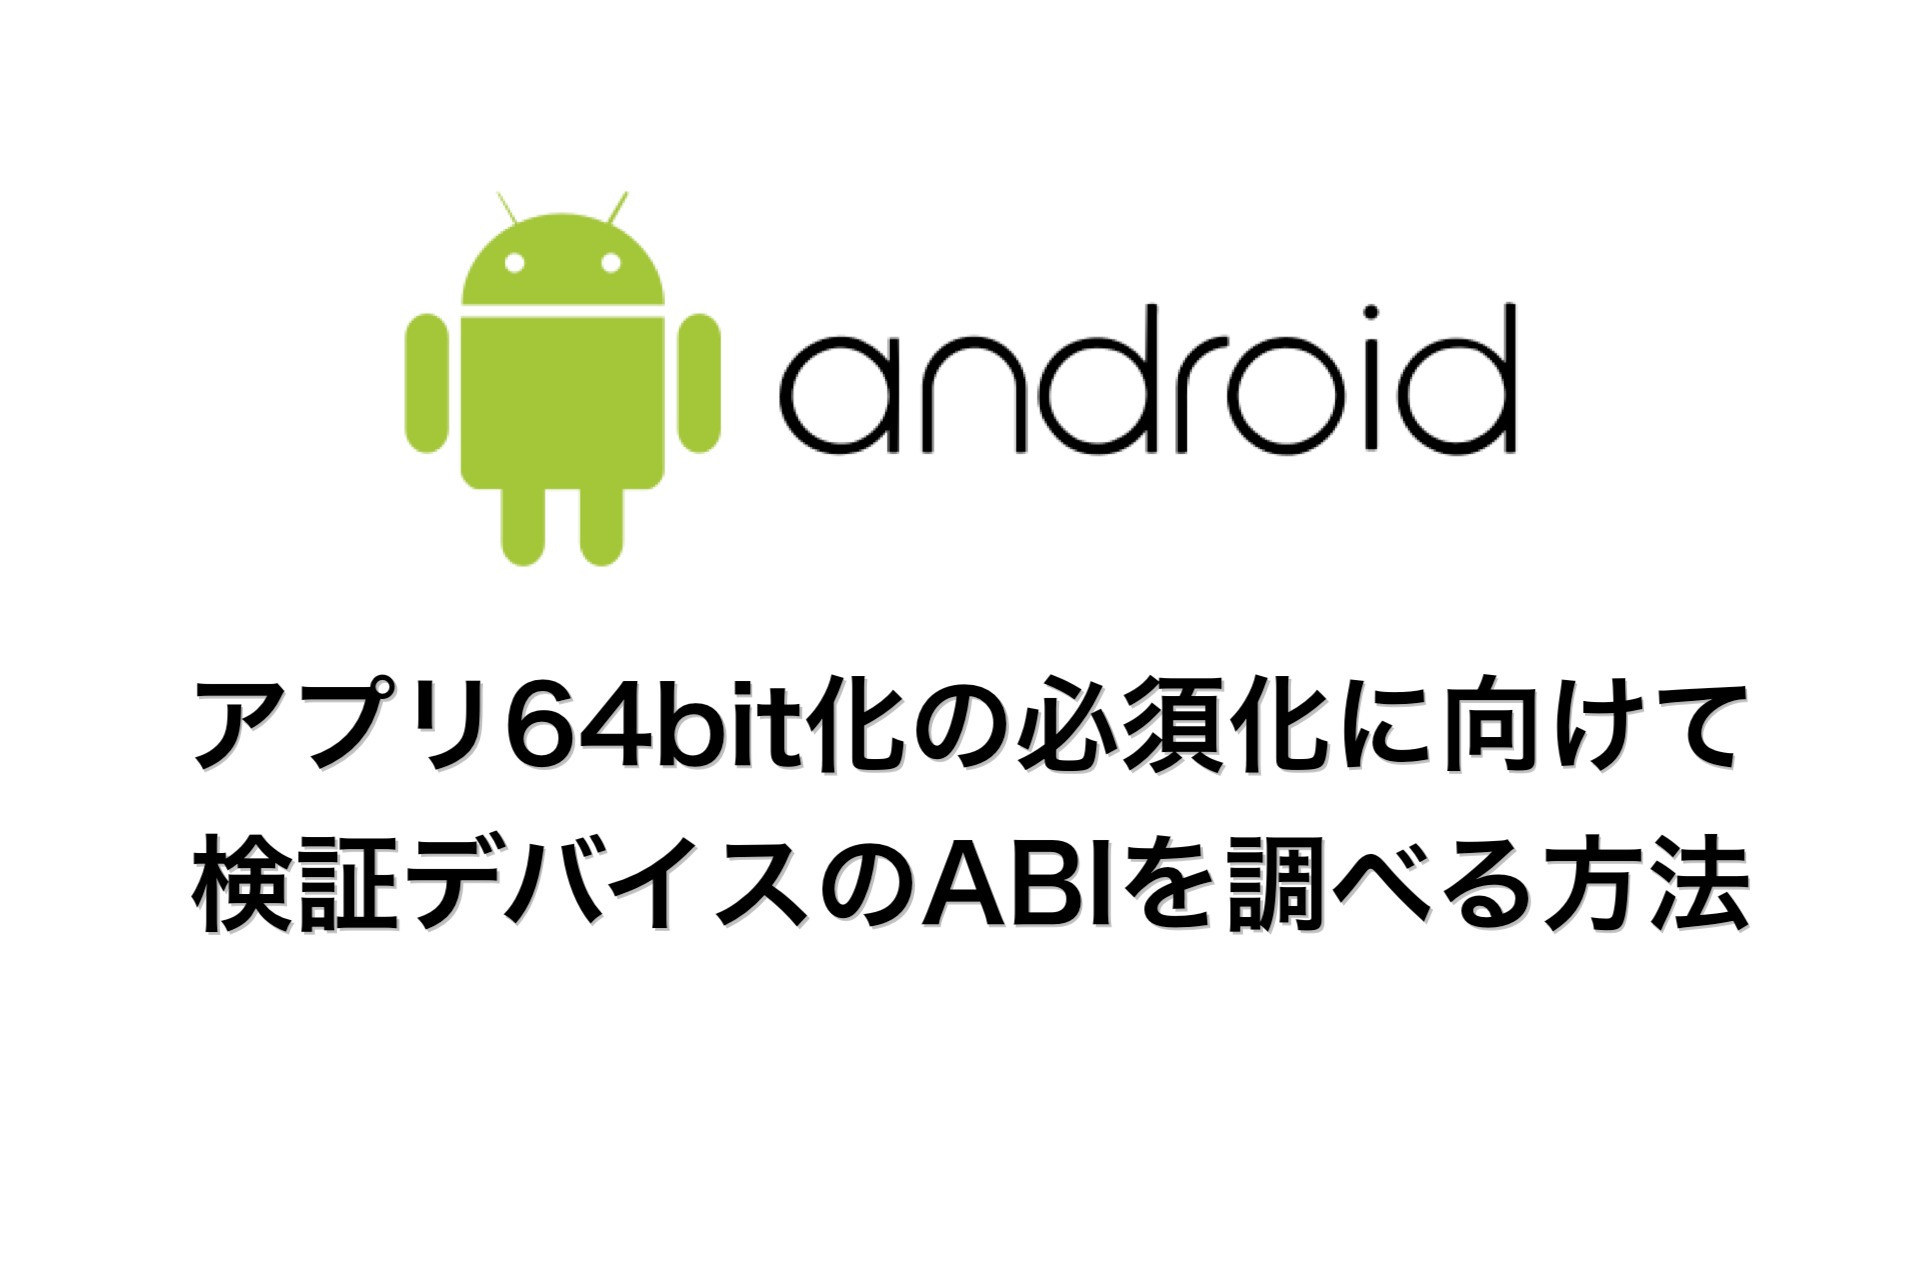 notwork_android_64bit